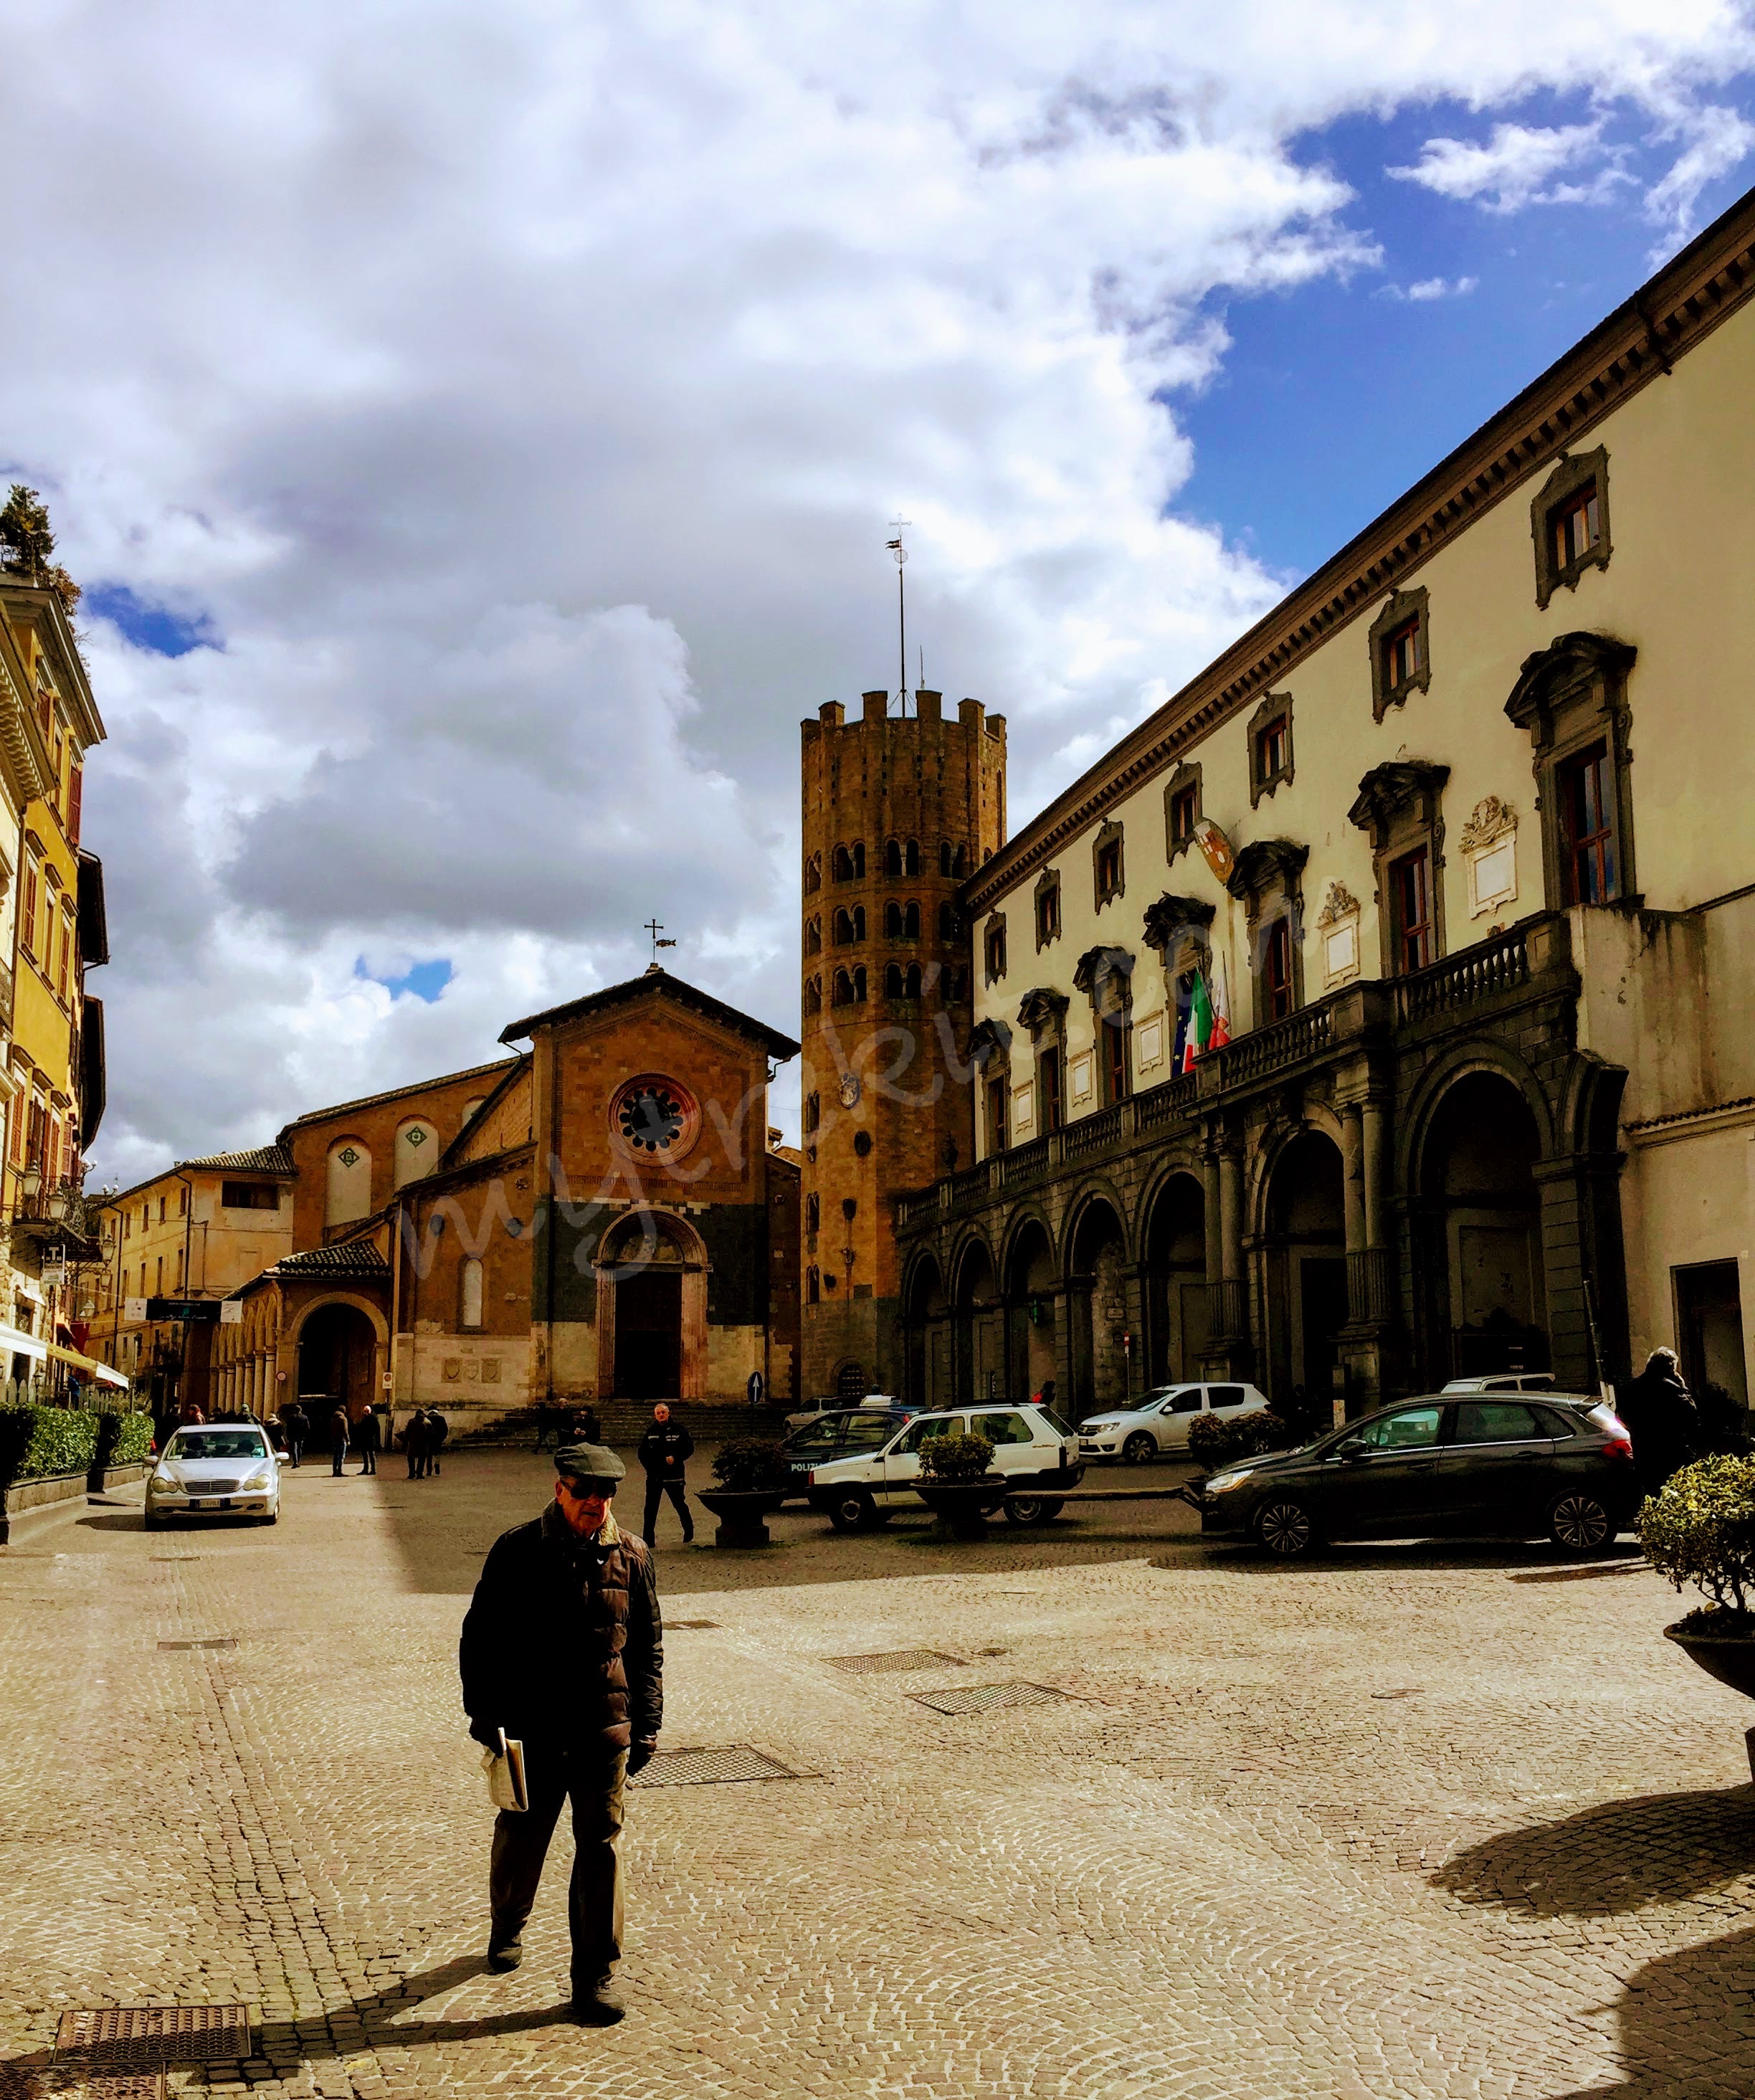 Orvieto's town hall on the right.